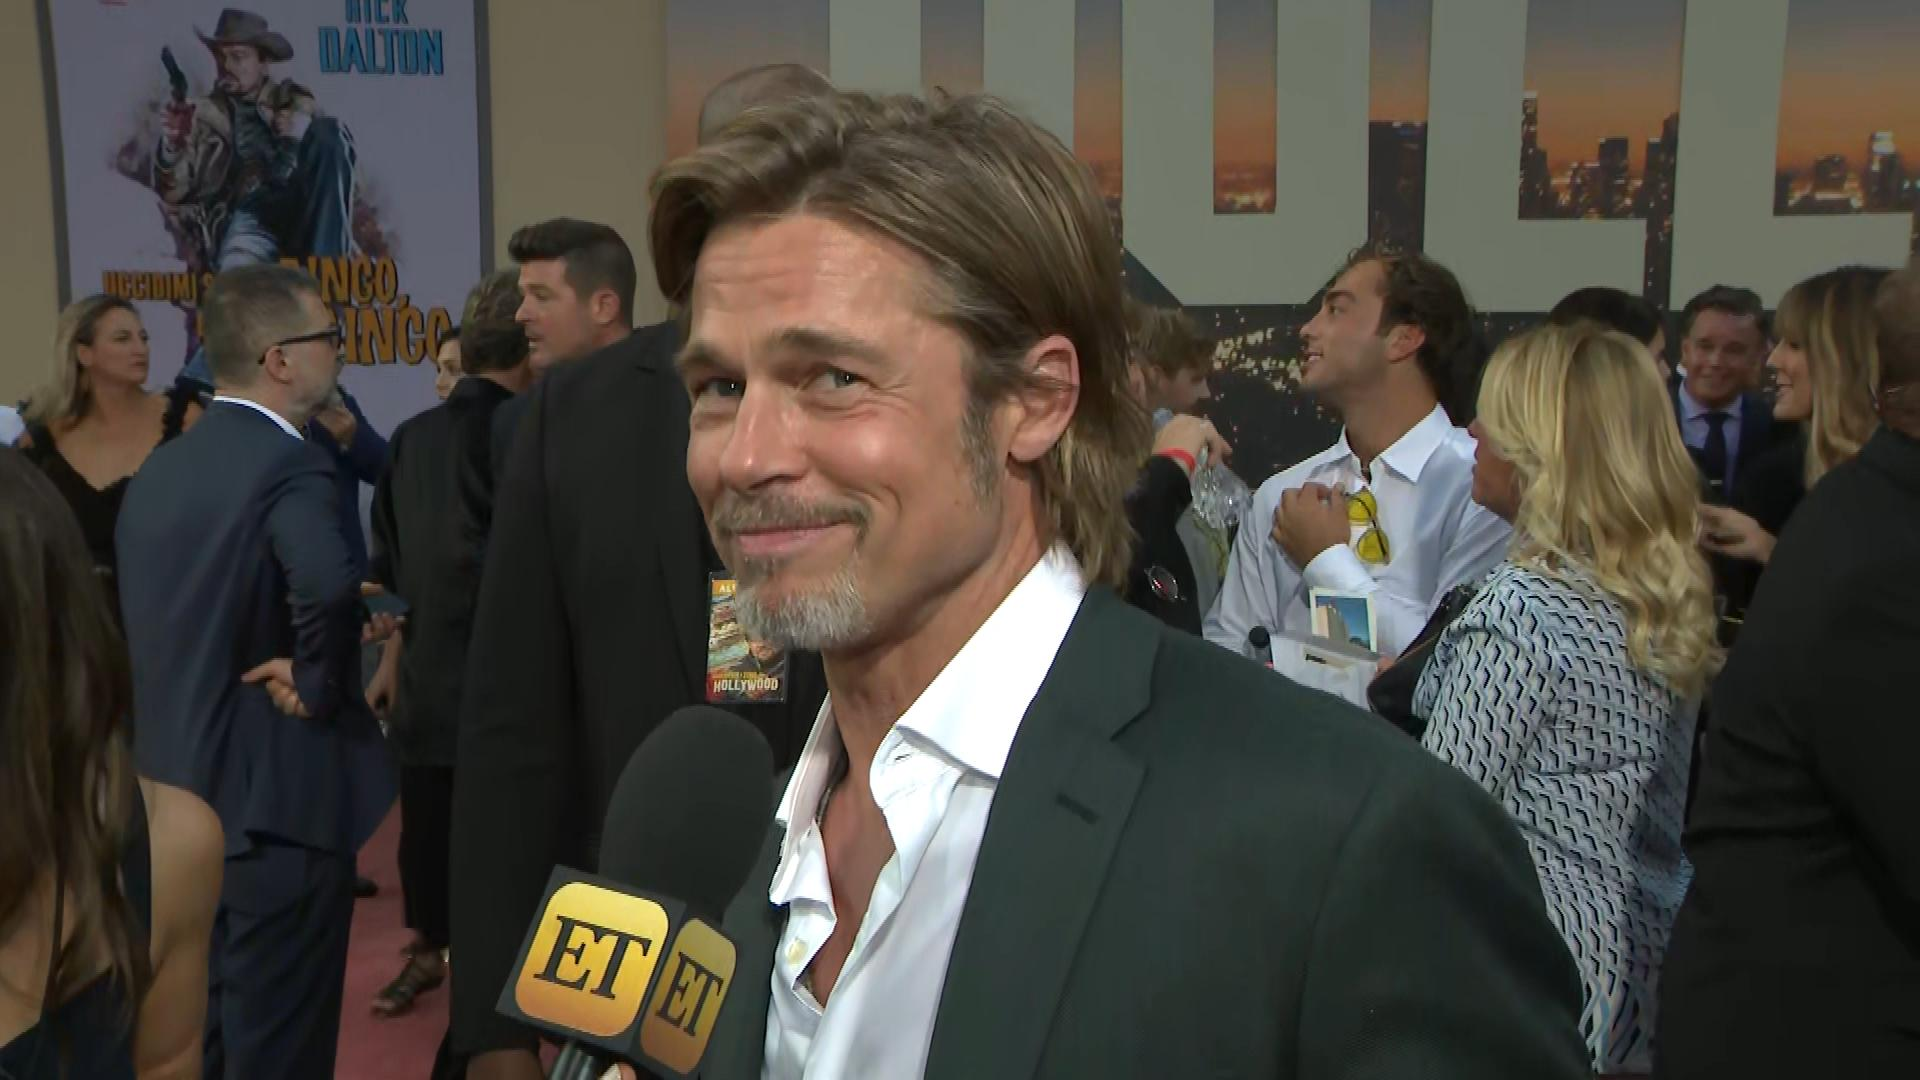 Brad Pitt Says Leonardo DiCaprio Throws 'Best Tantrums Ever' in 'Once Upon a Time in Hollywood' (Exclusive)